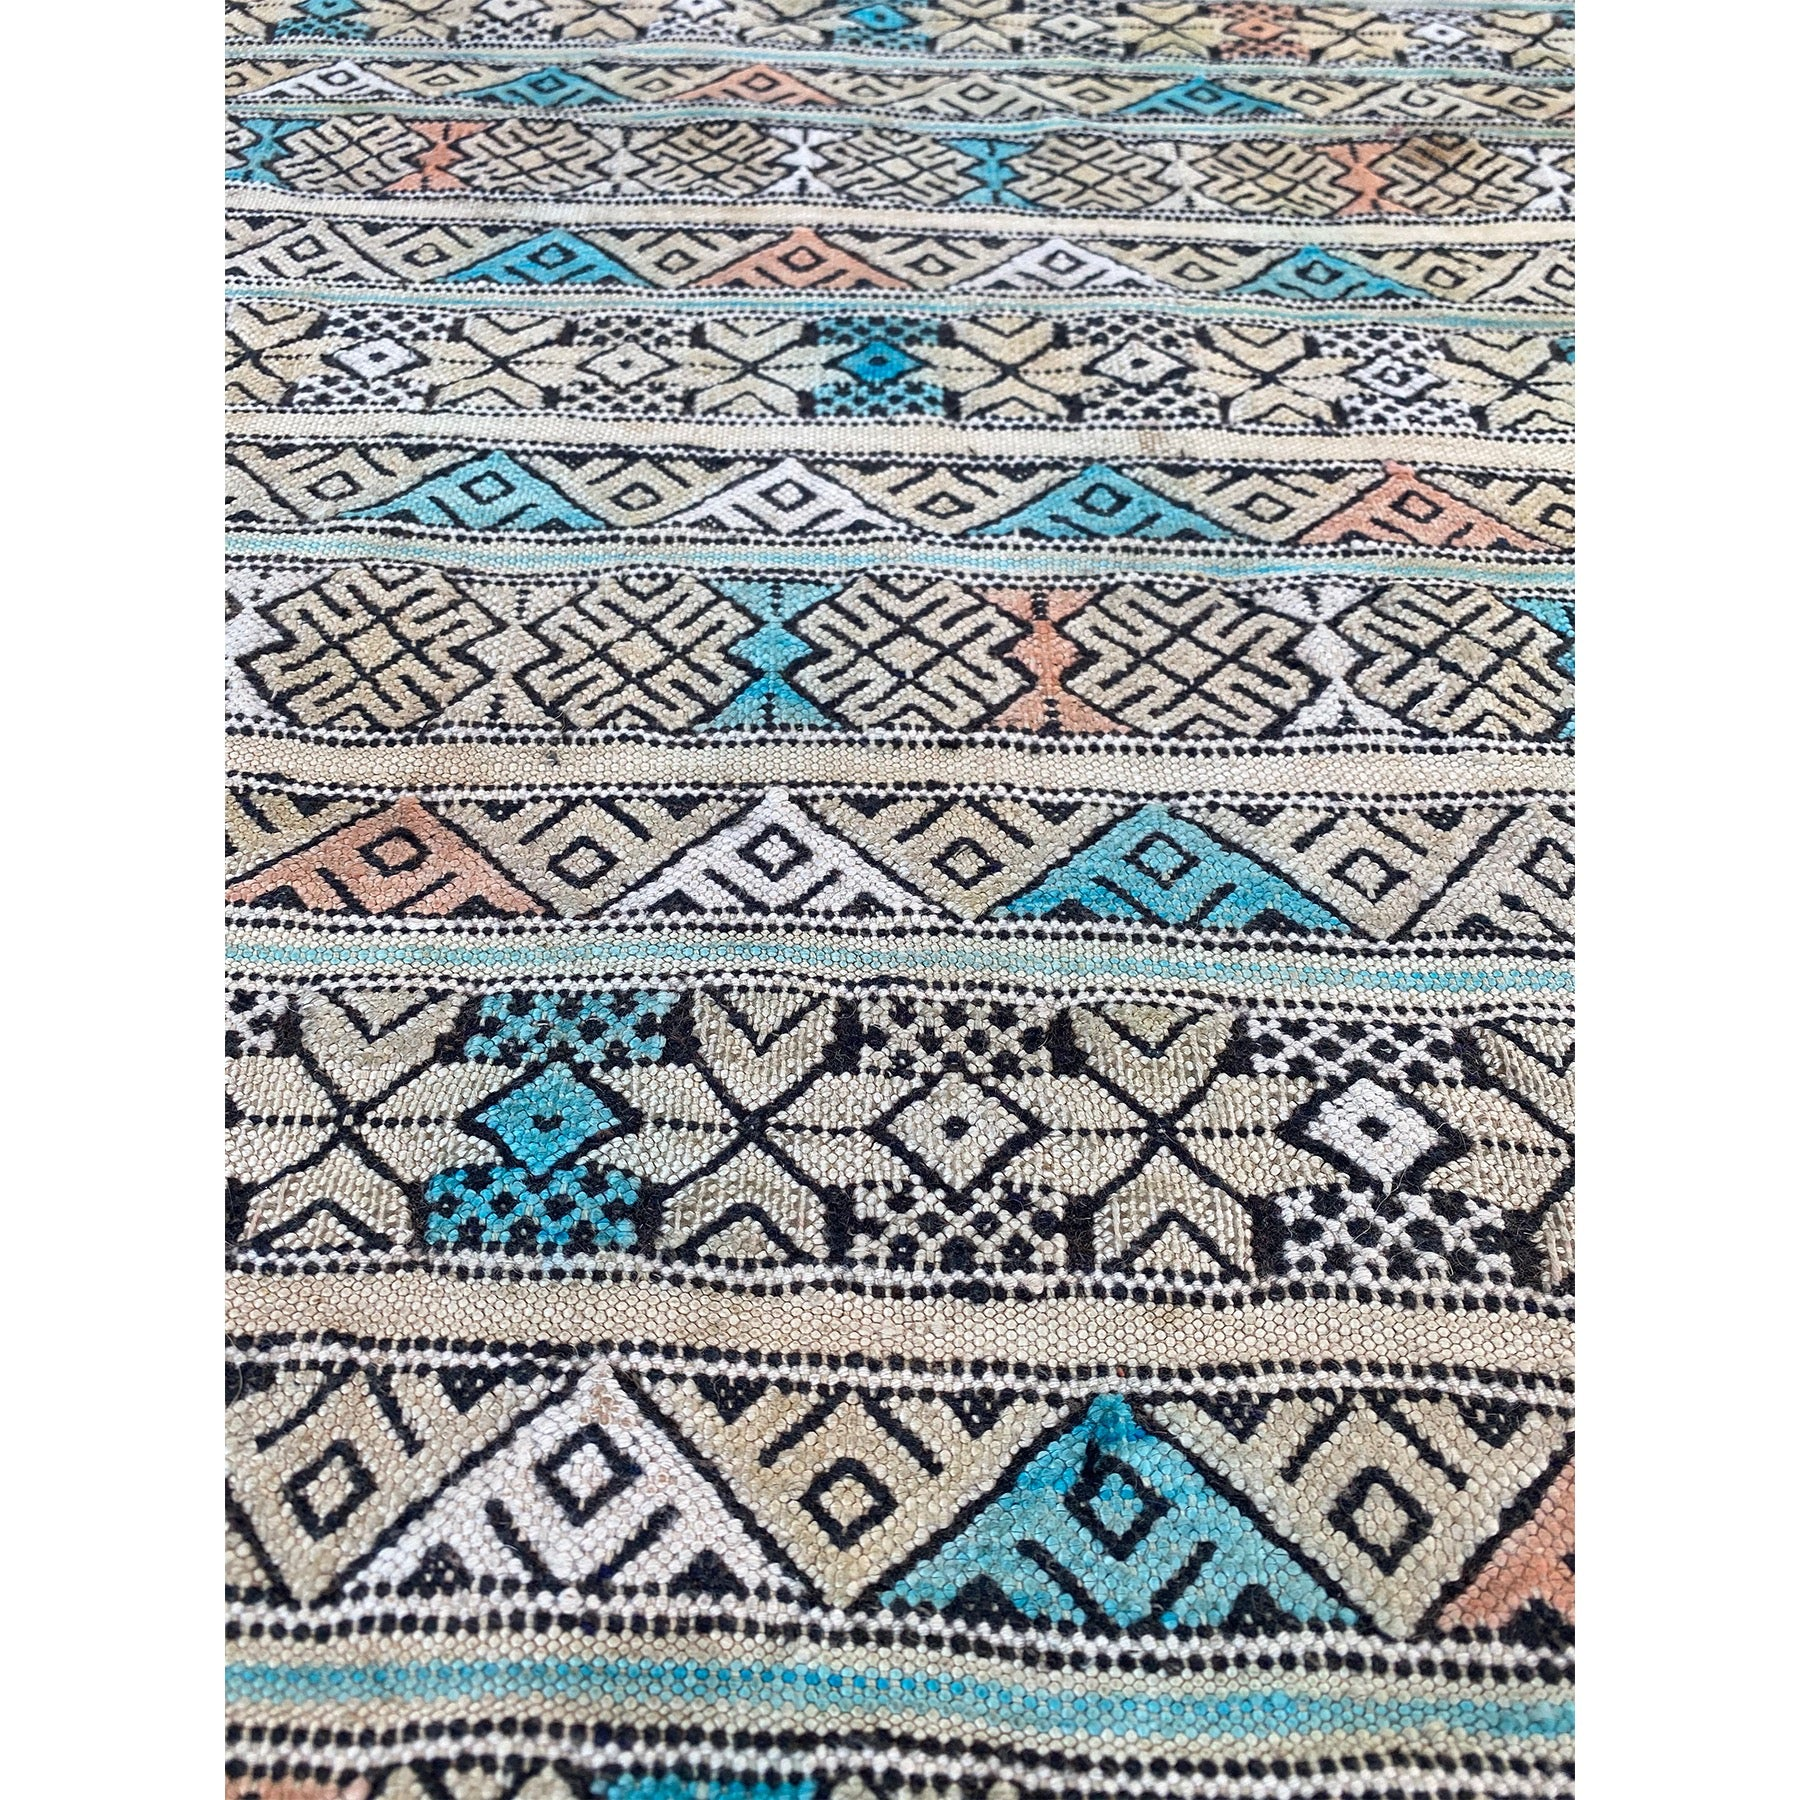 Vintage tribal flatwoven Moroccan runner rug with blue and pink details - Kantara | Moroccan Rugs